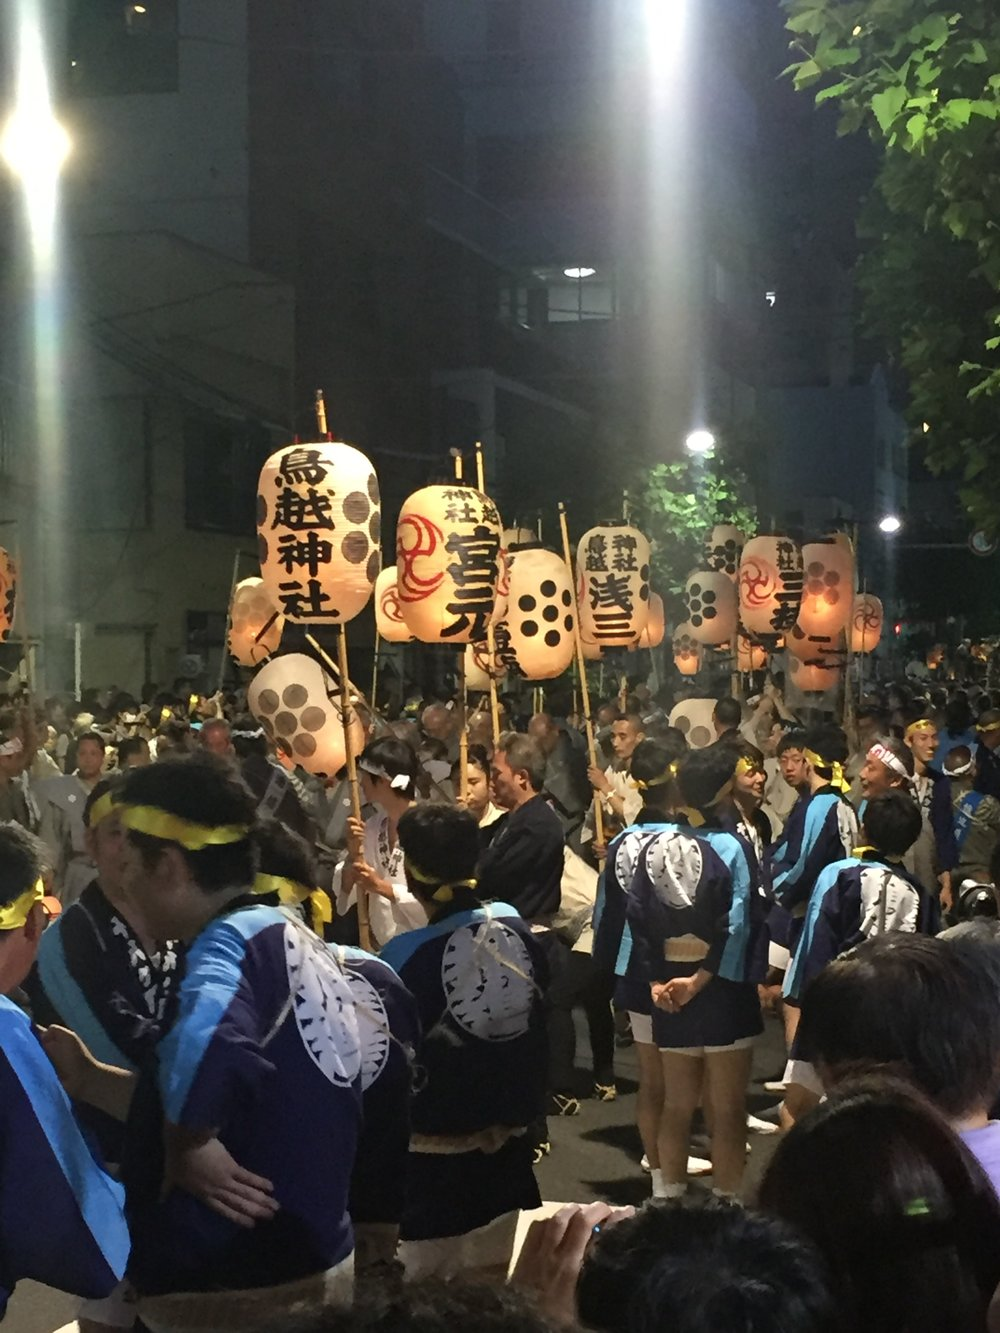 Shinto festival procession, in which the spirit of a diety is enshrined into a Mikoshi and paraded through the streets